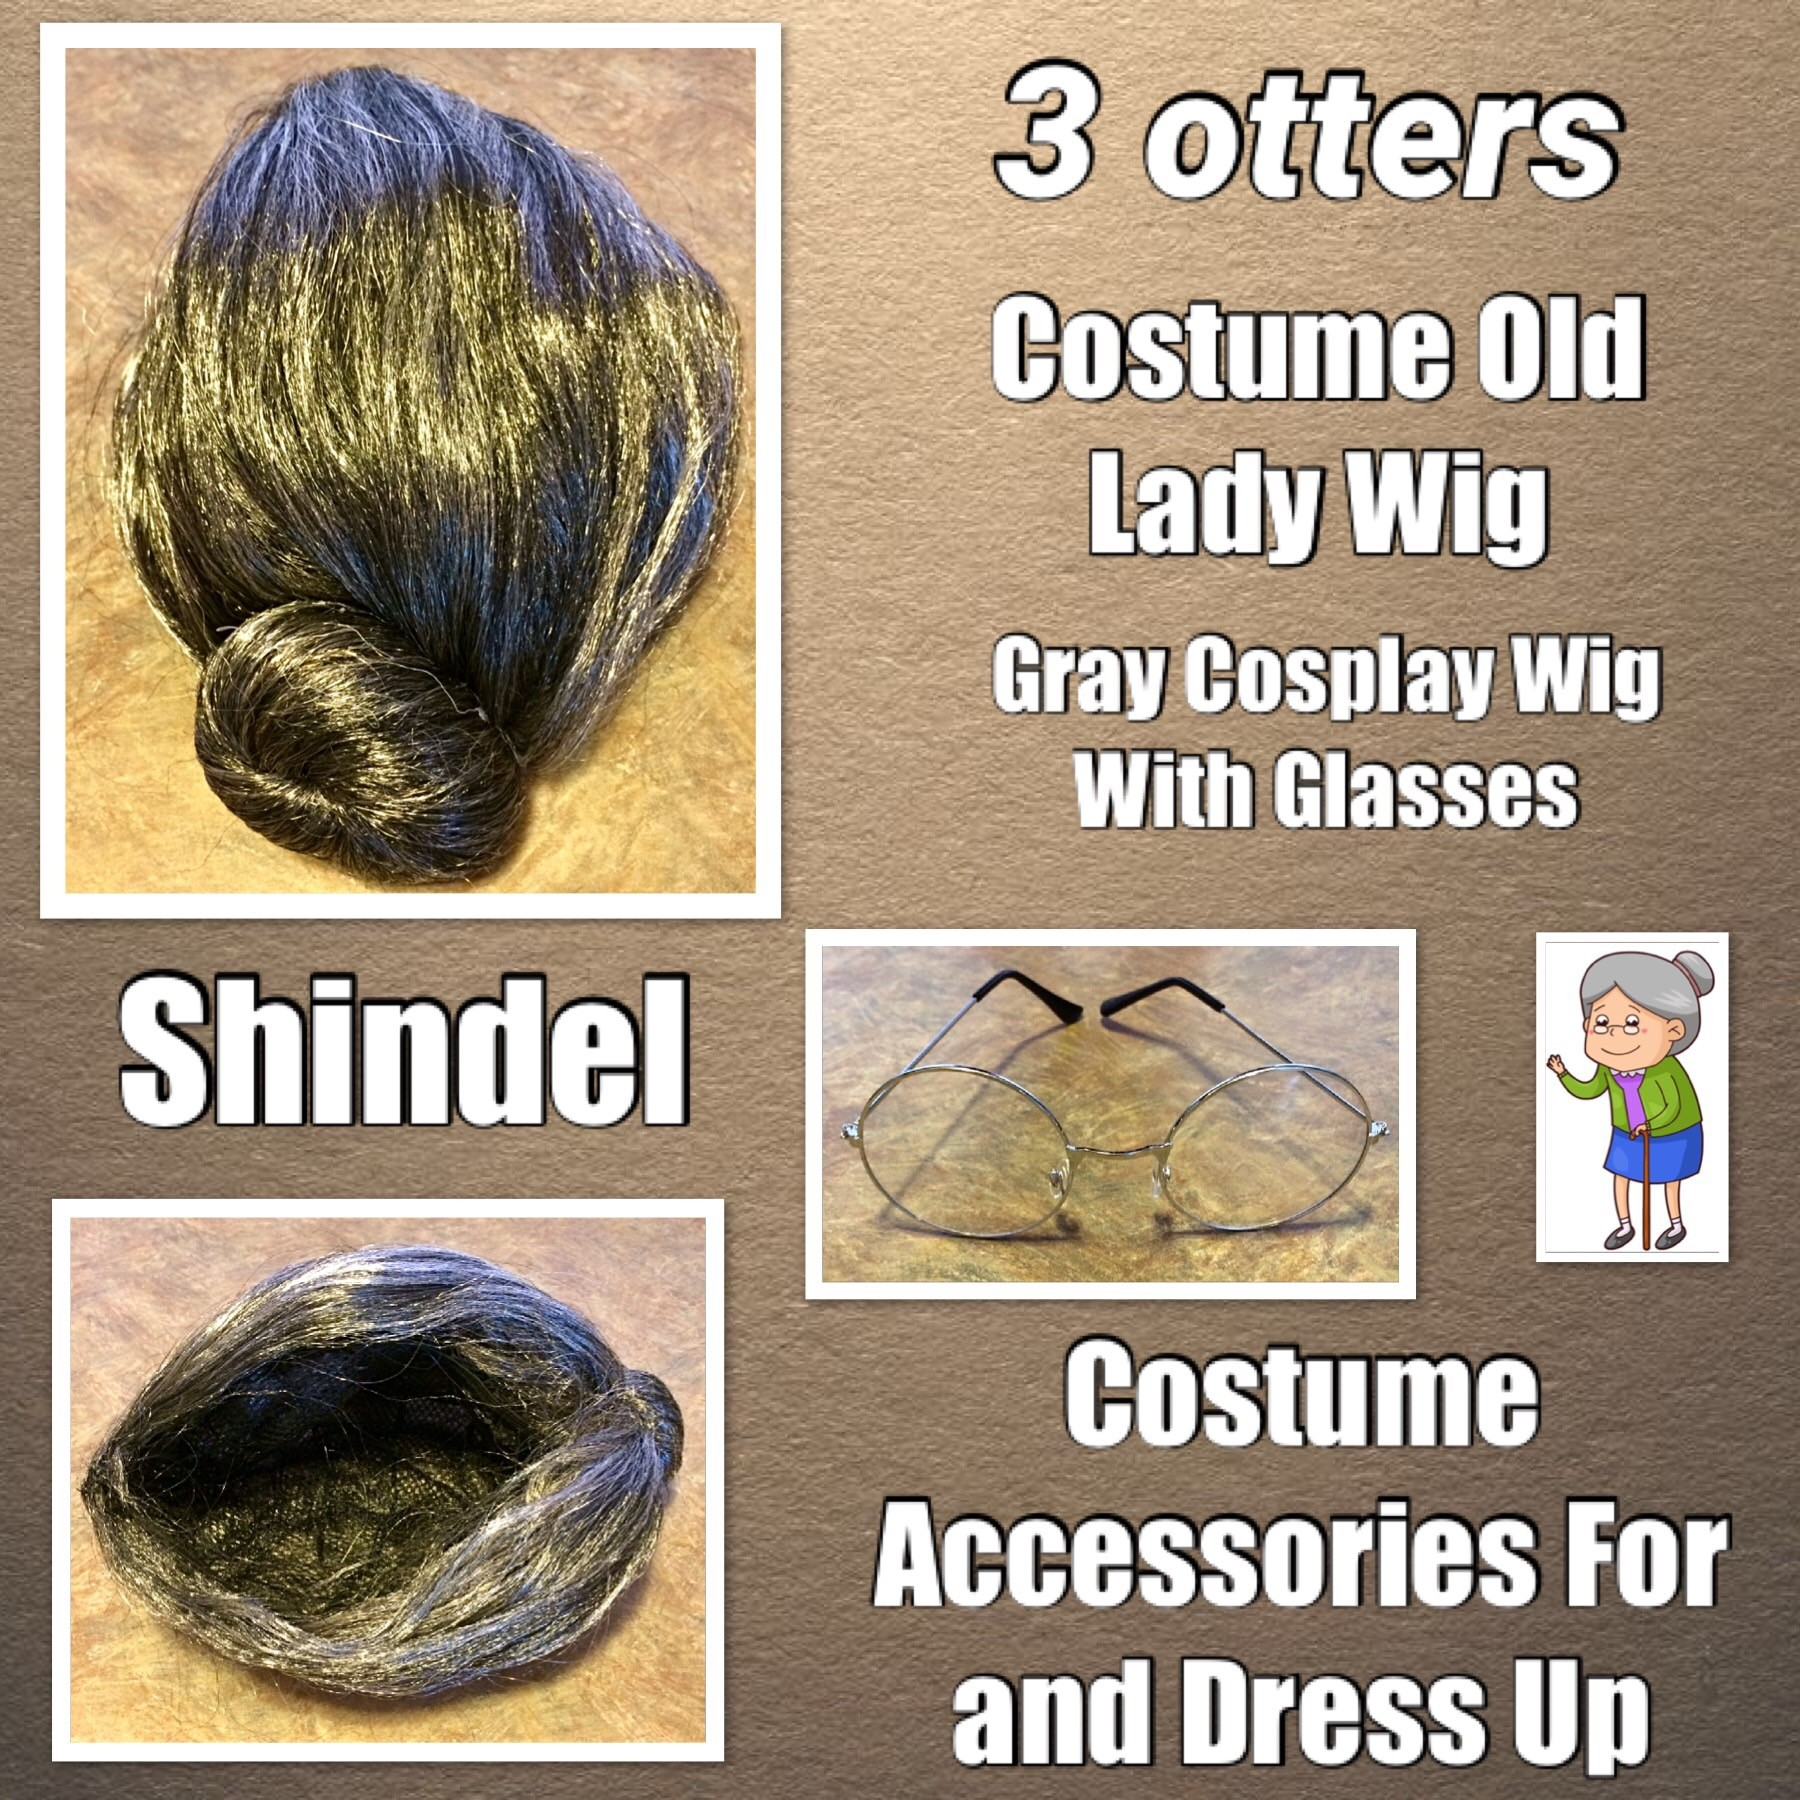 Costume Old Lady Wig, Gray Wig Women's Cosplay Wig With Glasses Costume Accessories For Dress Up Perform (2 PCS) - 3 otters